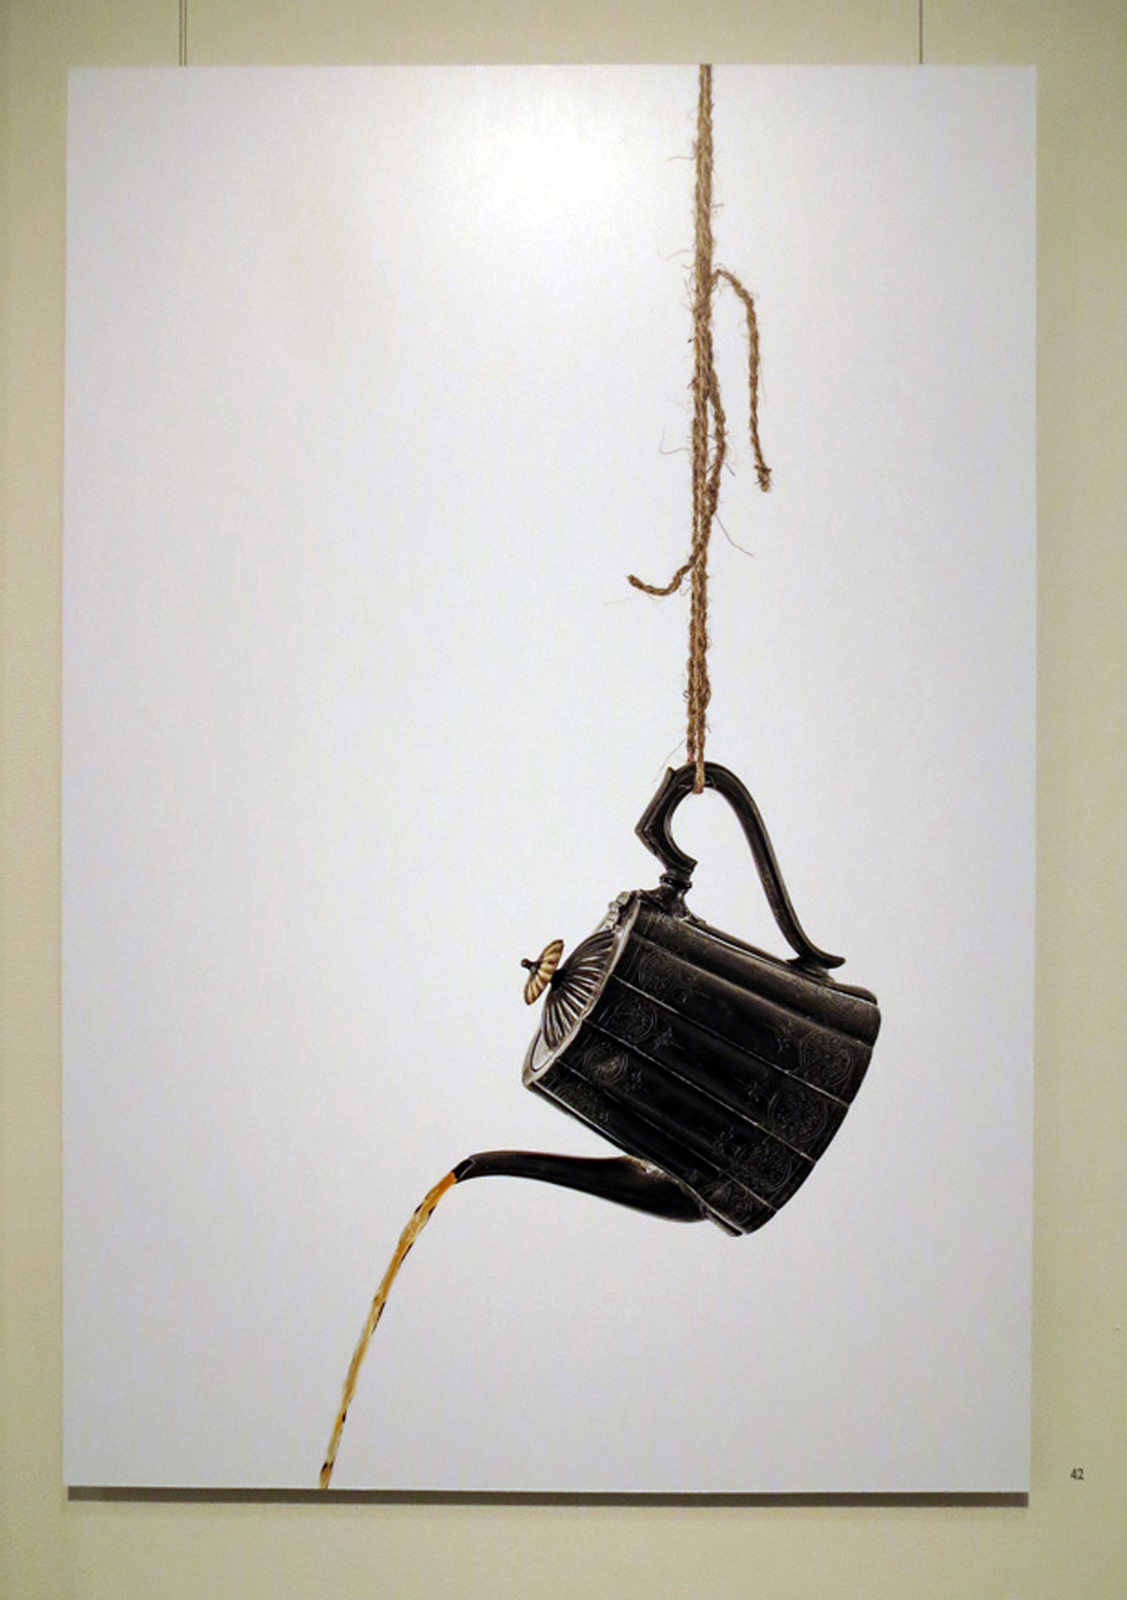 42.  Teapot  from  The Sword of Damocles  series, Eva Fernandez, archival inkjet print on aluminium, $2700